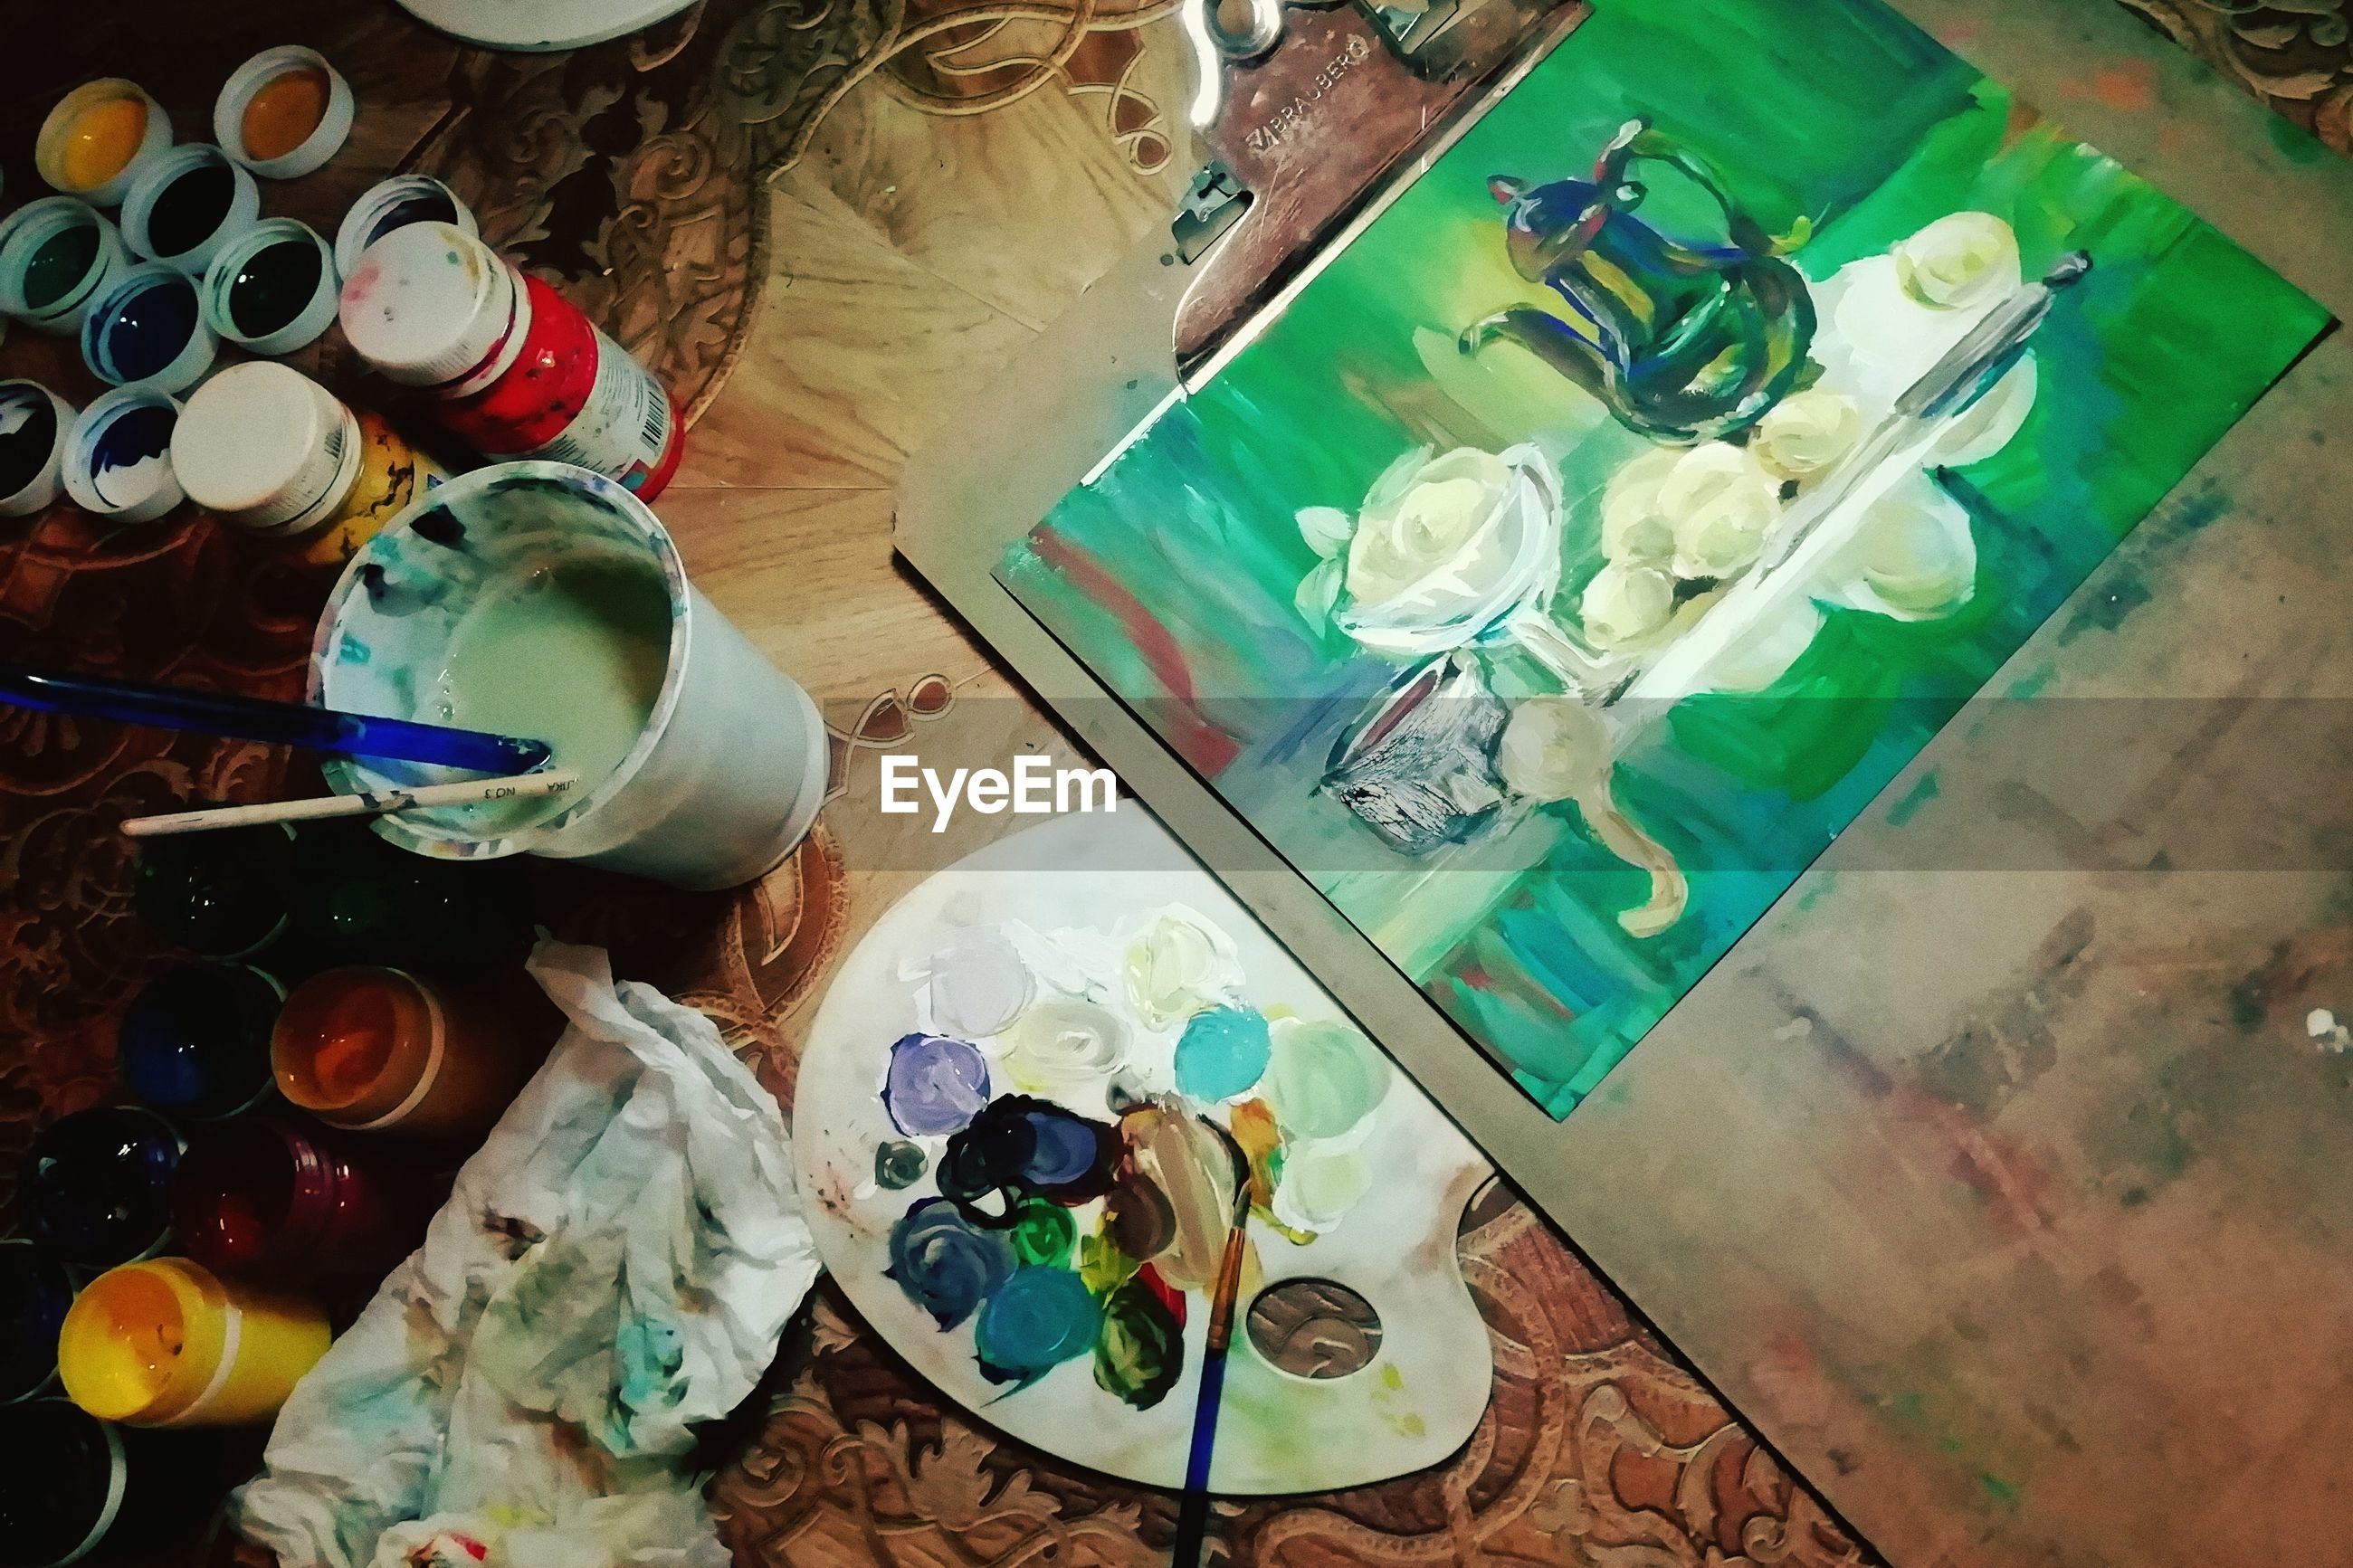 container, high angle view, indoors, choice, large group of objects, art and craft, table, variation, multi colored, no people, still life, bottle, paint, paintbrush, watercolor paints, brush, palette, messy, craft, abundance, art and craft equipment